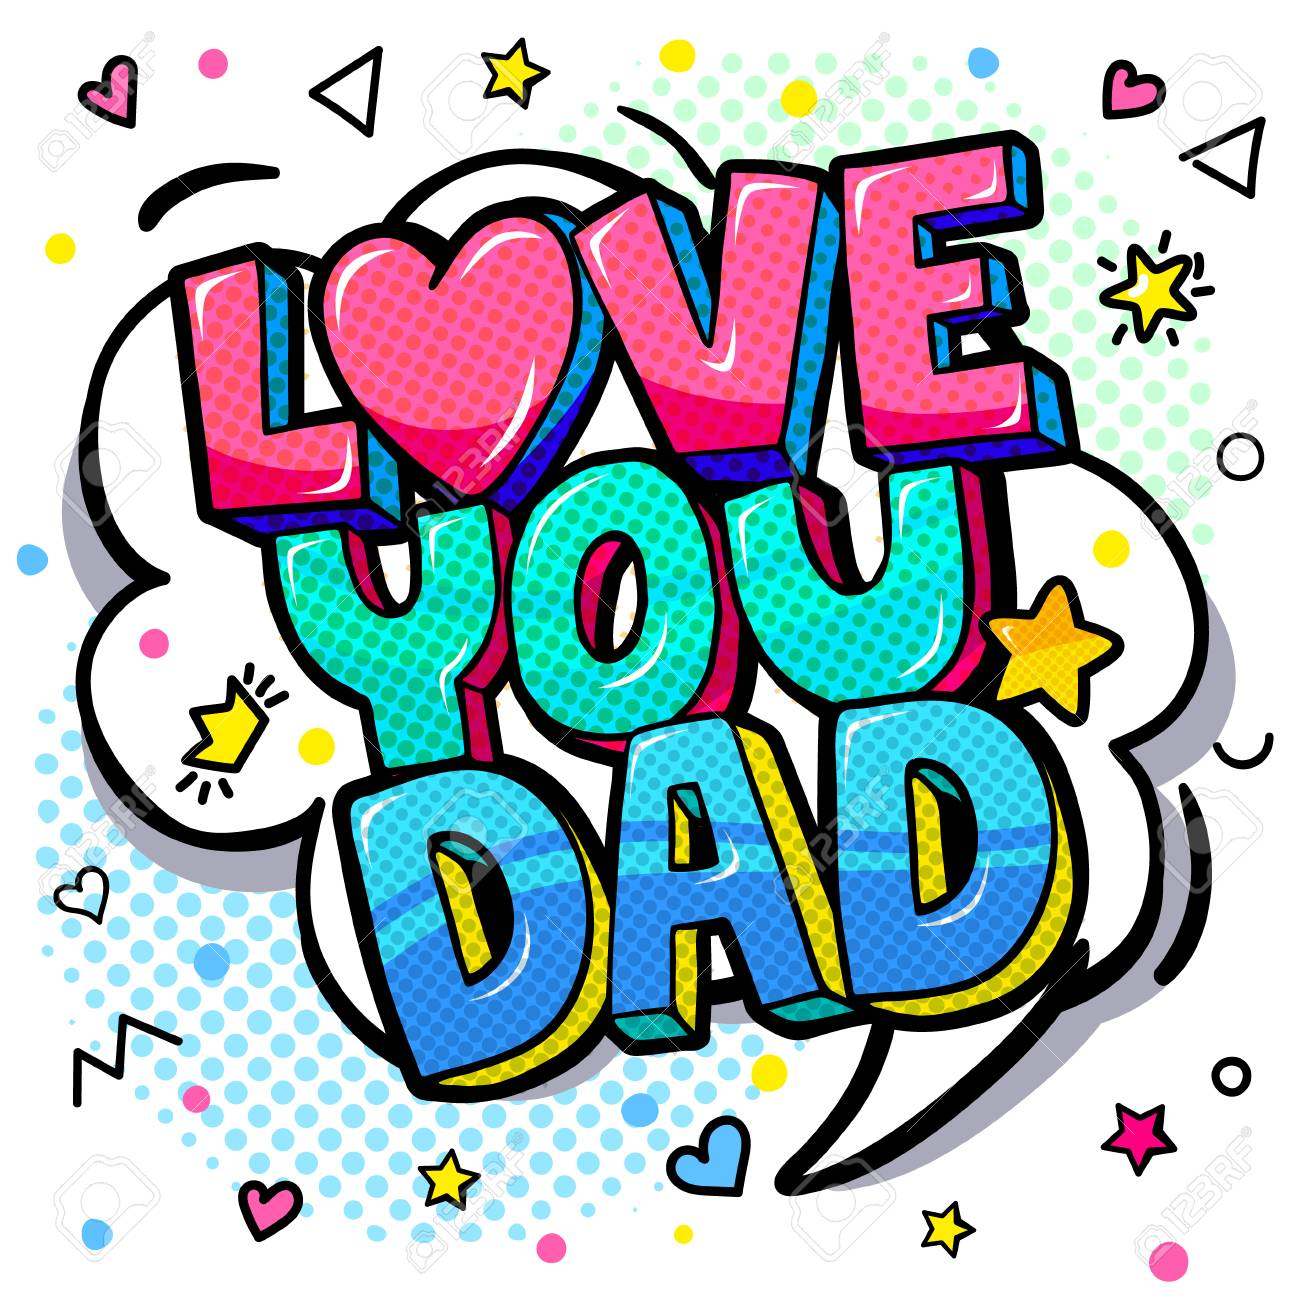 Love you dad message in sound speech bubble  Happy Father's Day